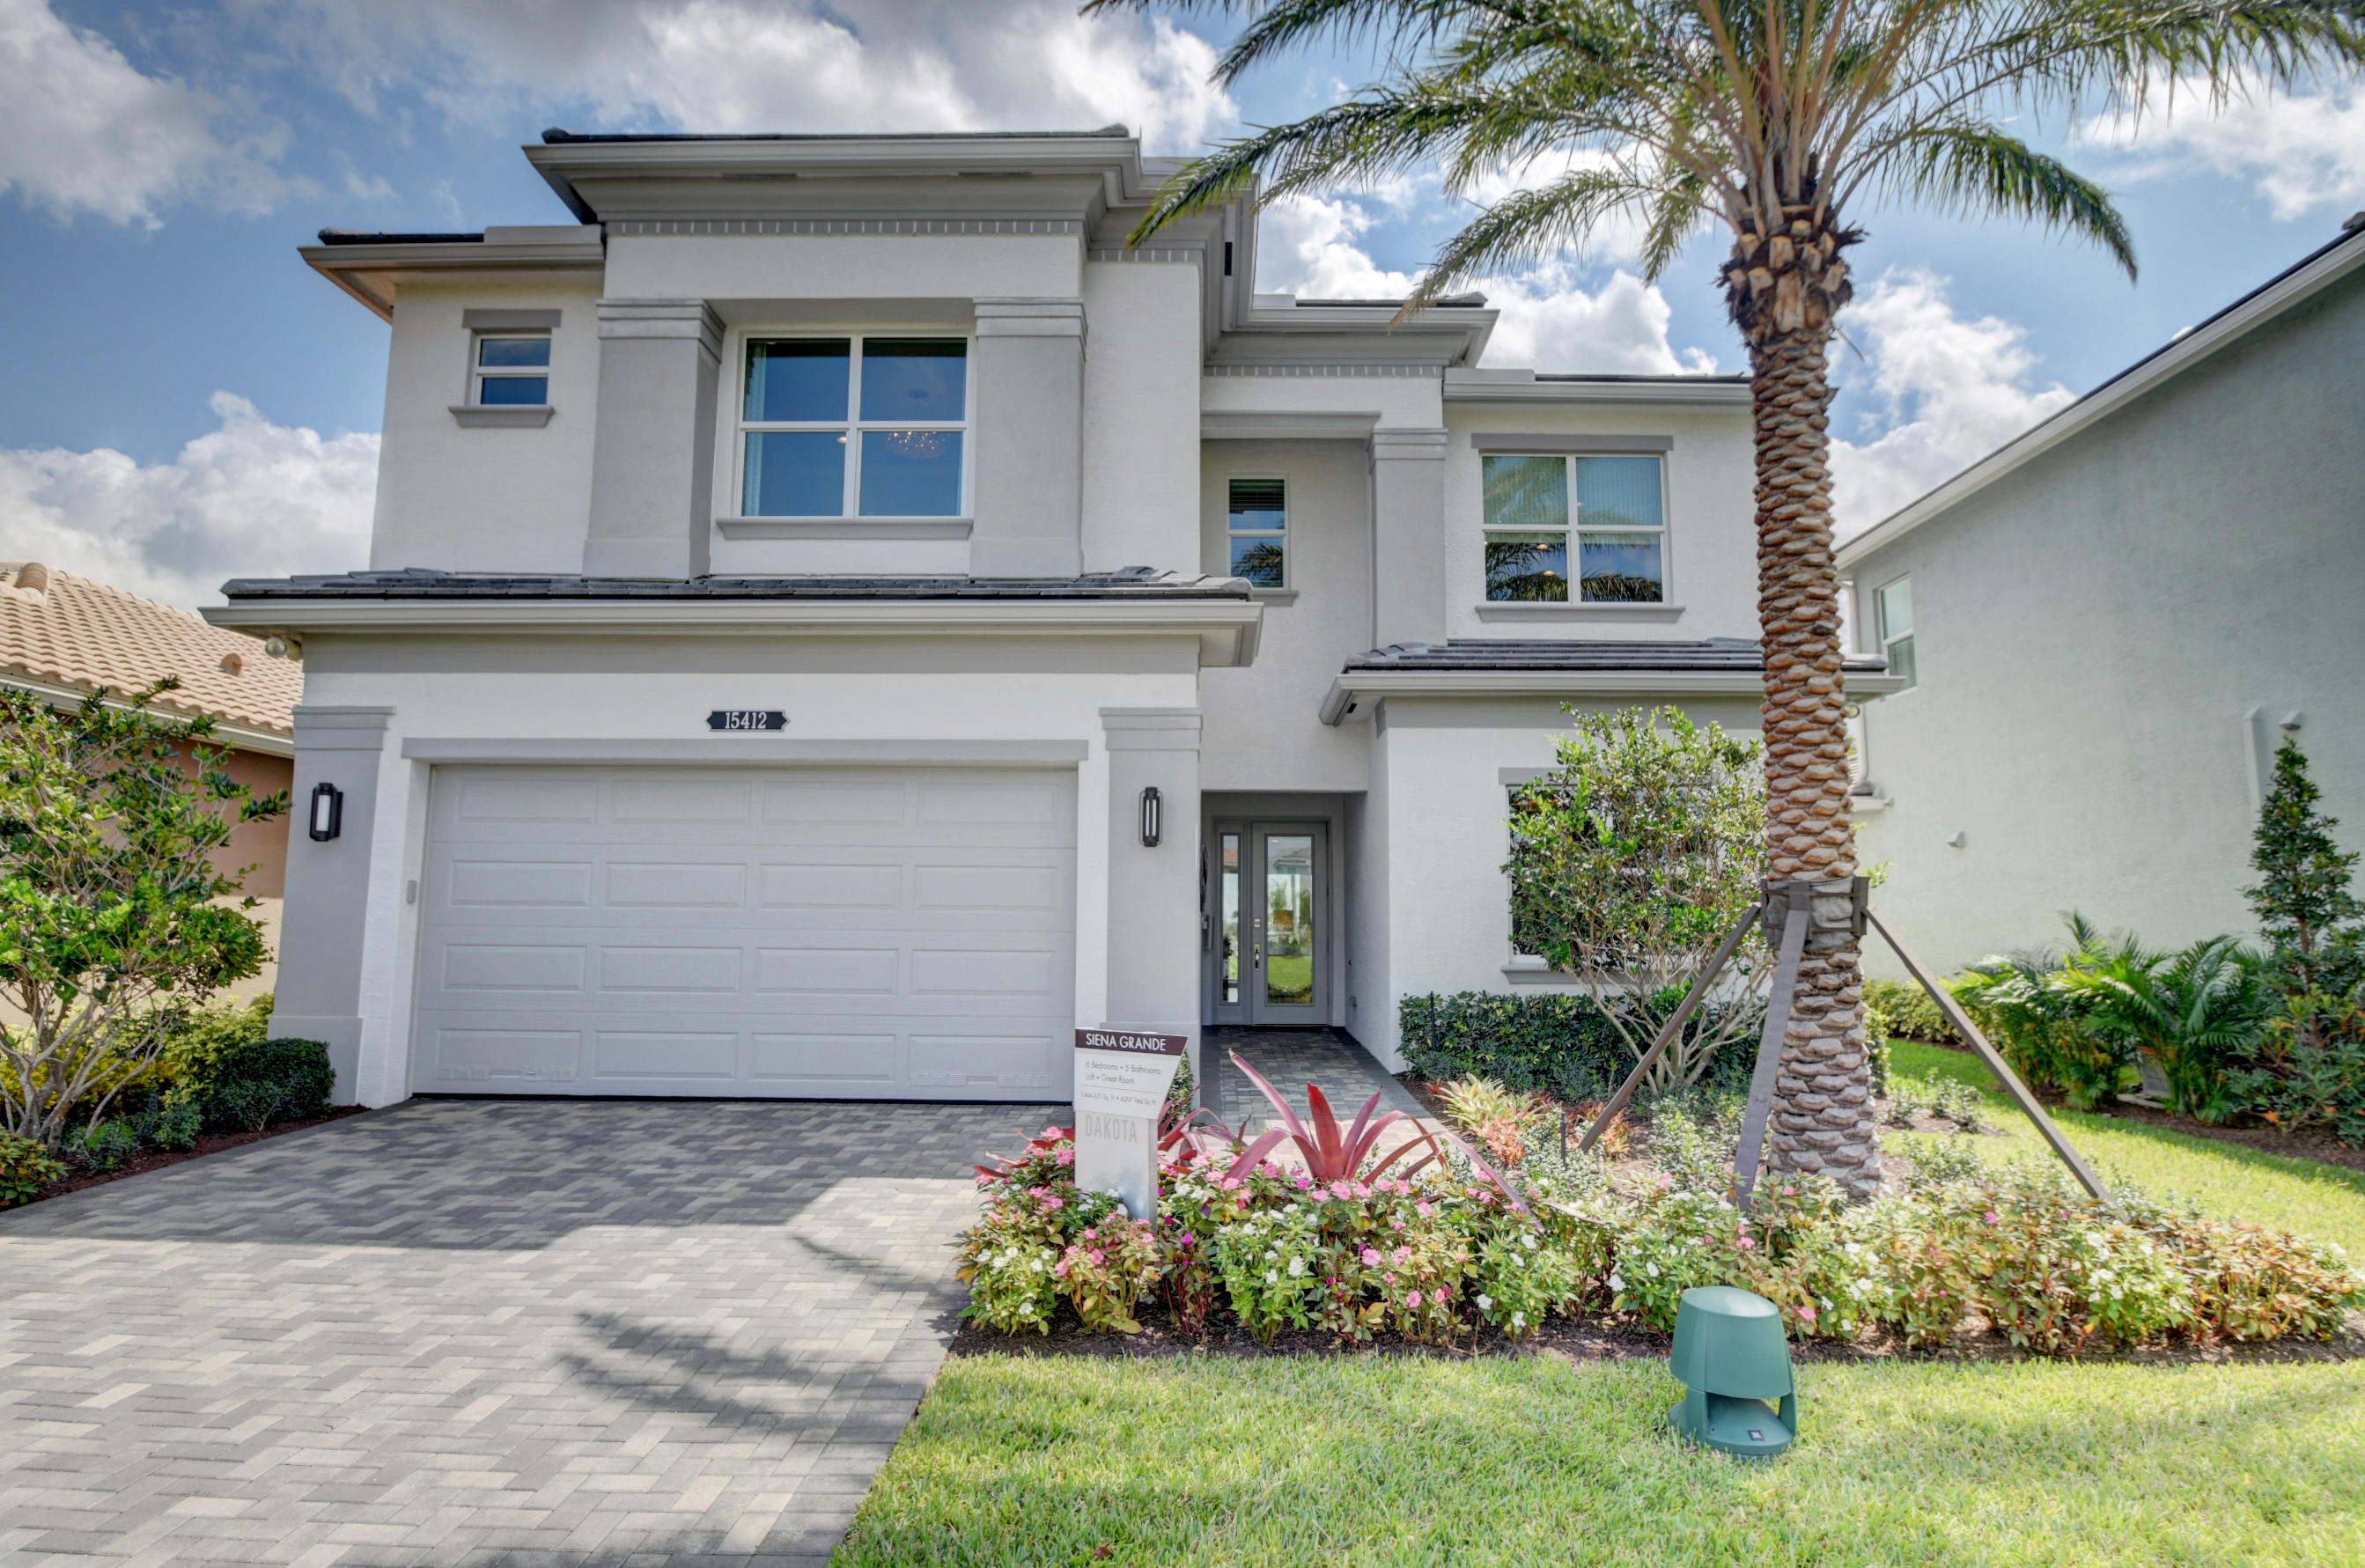 SUSSMAN AGR PUD NORTH PLAT ONE home 15256 Waterleaf Lane Delray Beach FL 33446